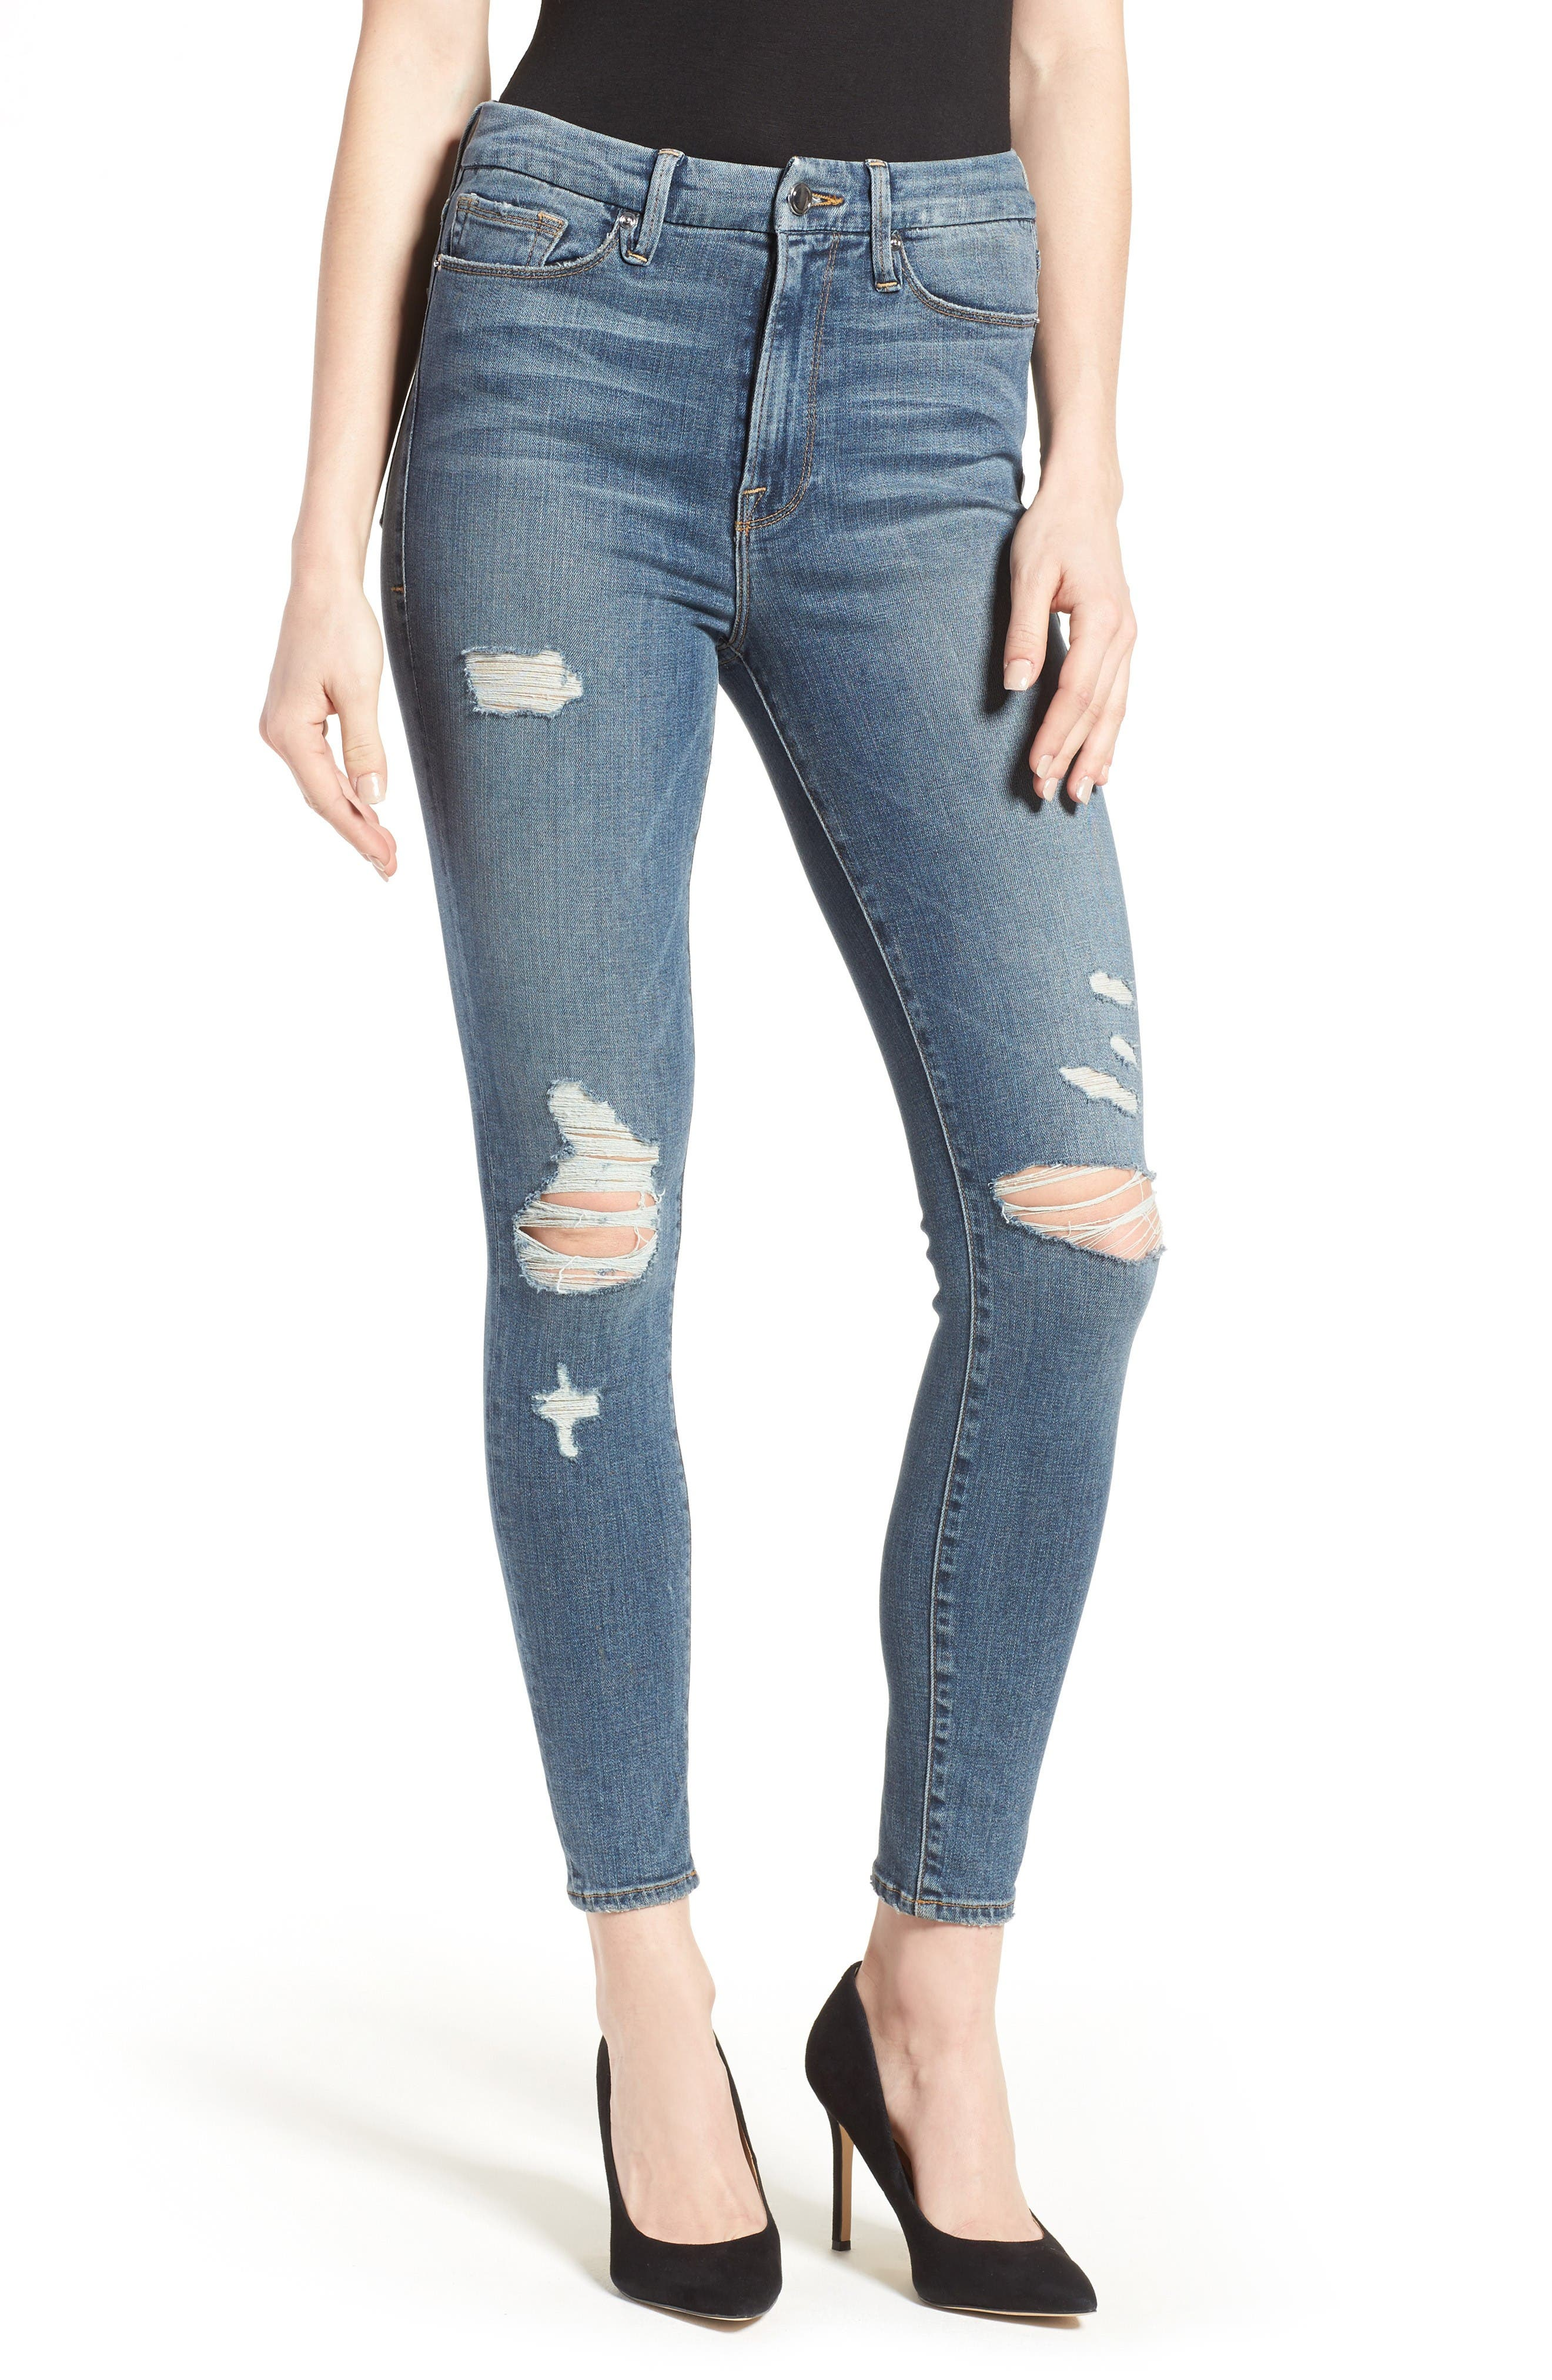 Alternate Image 1 Selected - Good American Good Waist High Waist Ripped Skinny Jeans (Blue 026) (Extended Sizes)